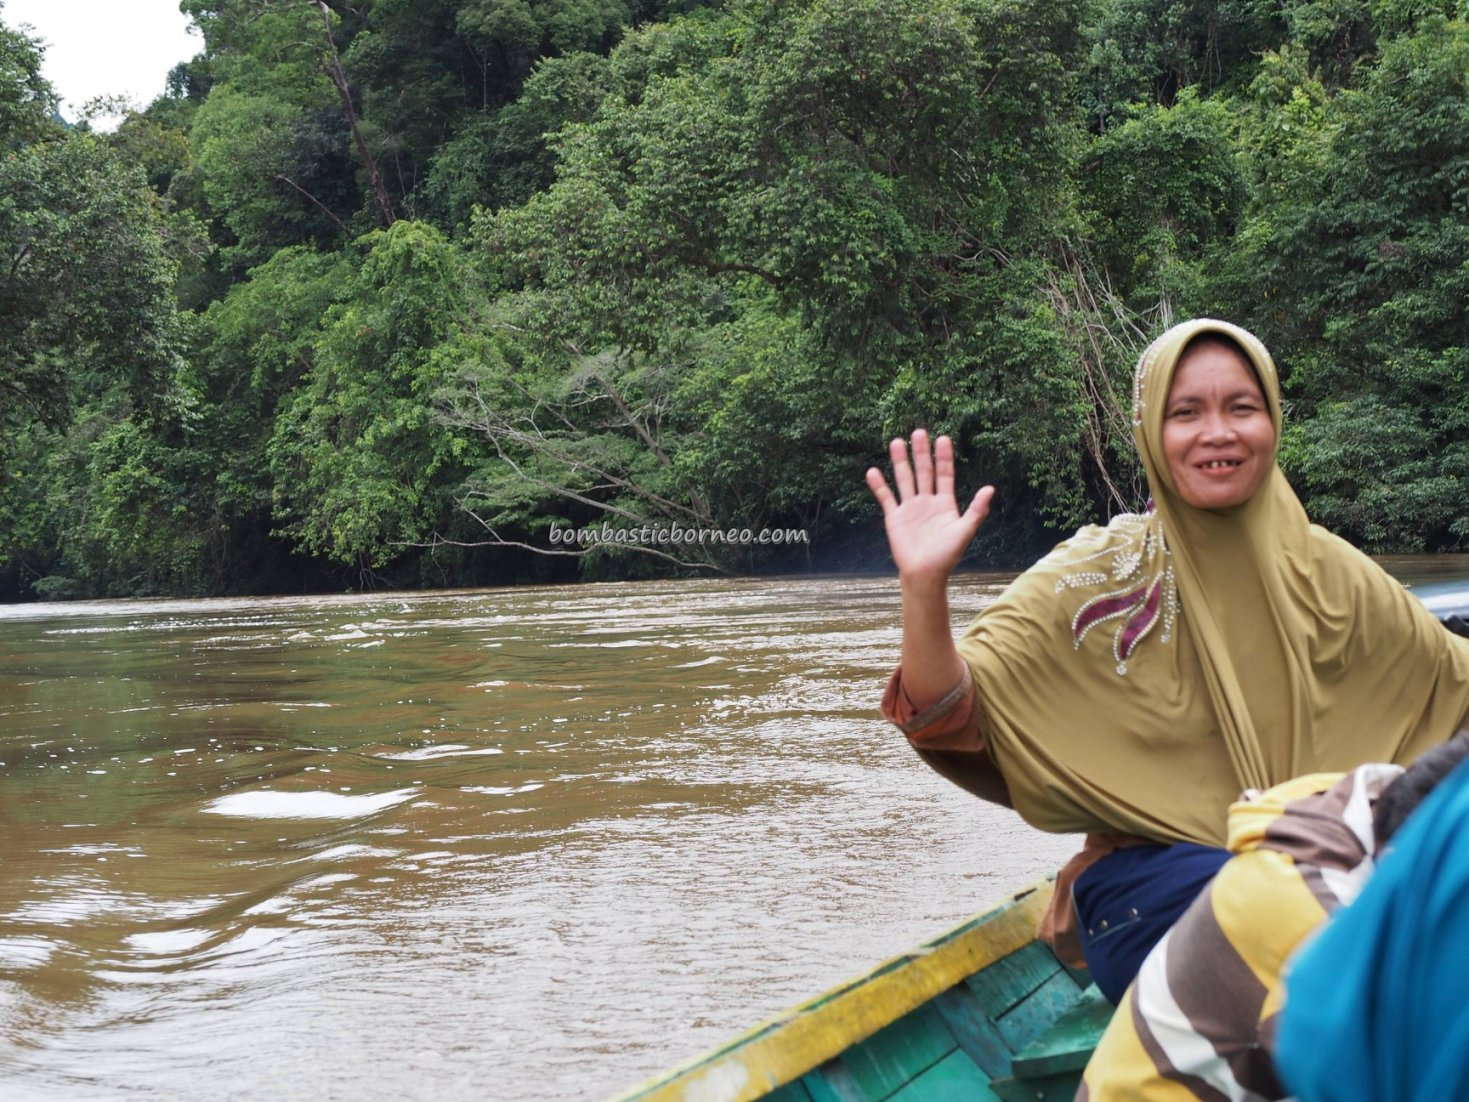 boat ride, river, adventure, nature, outdoor, destination, Borneo, Kalimantan Barat, Putussibau Selatan, tourist attraction, Tourism, travel guide, transborder, 印尼西加里曼丹,